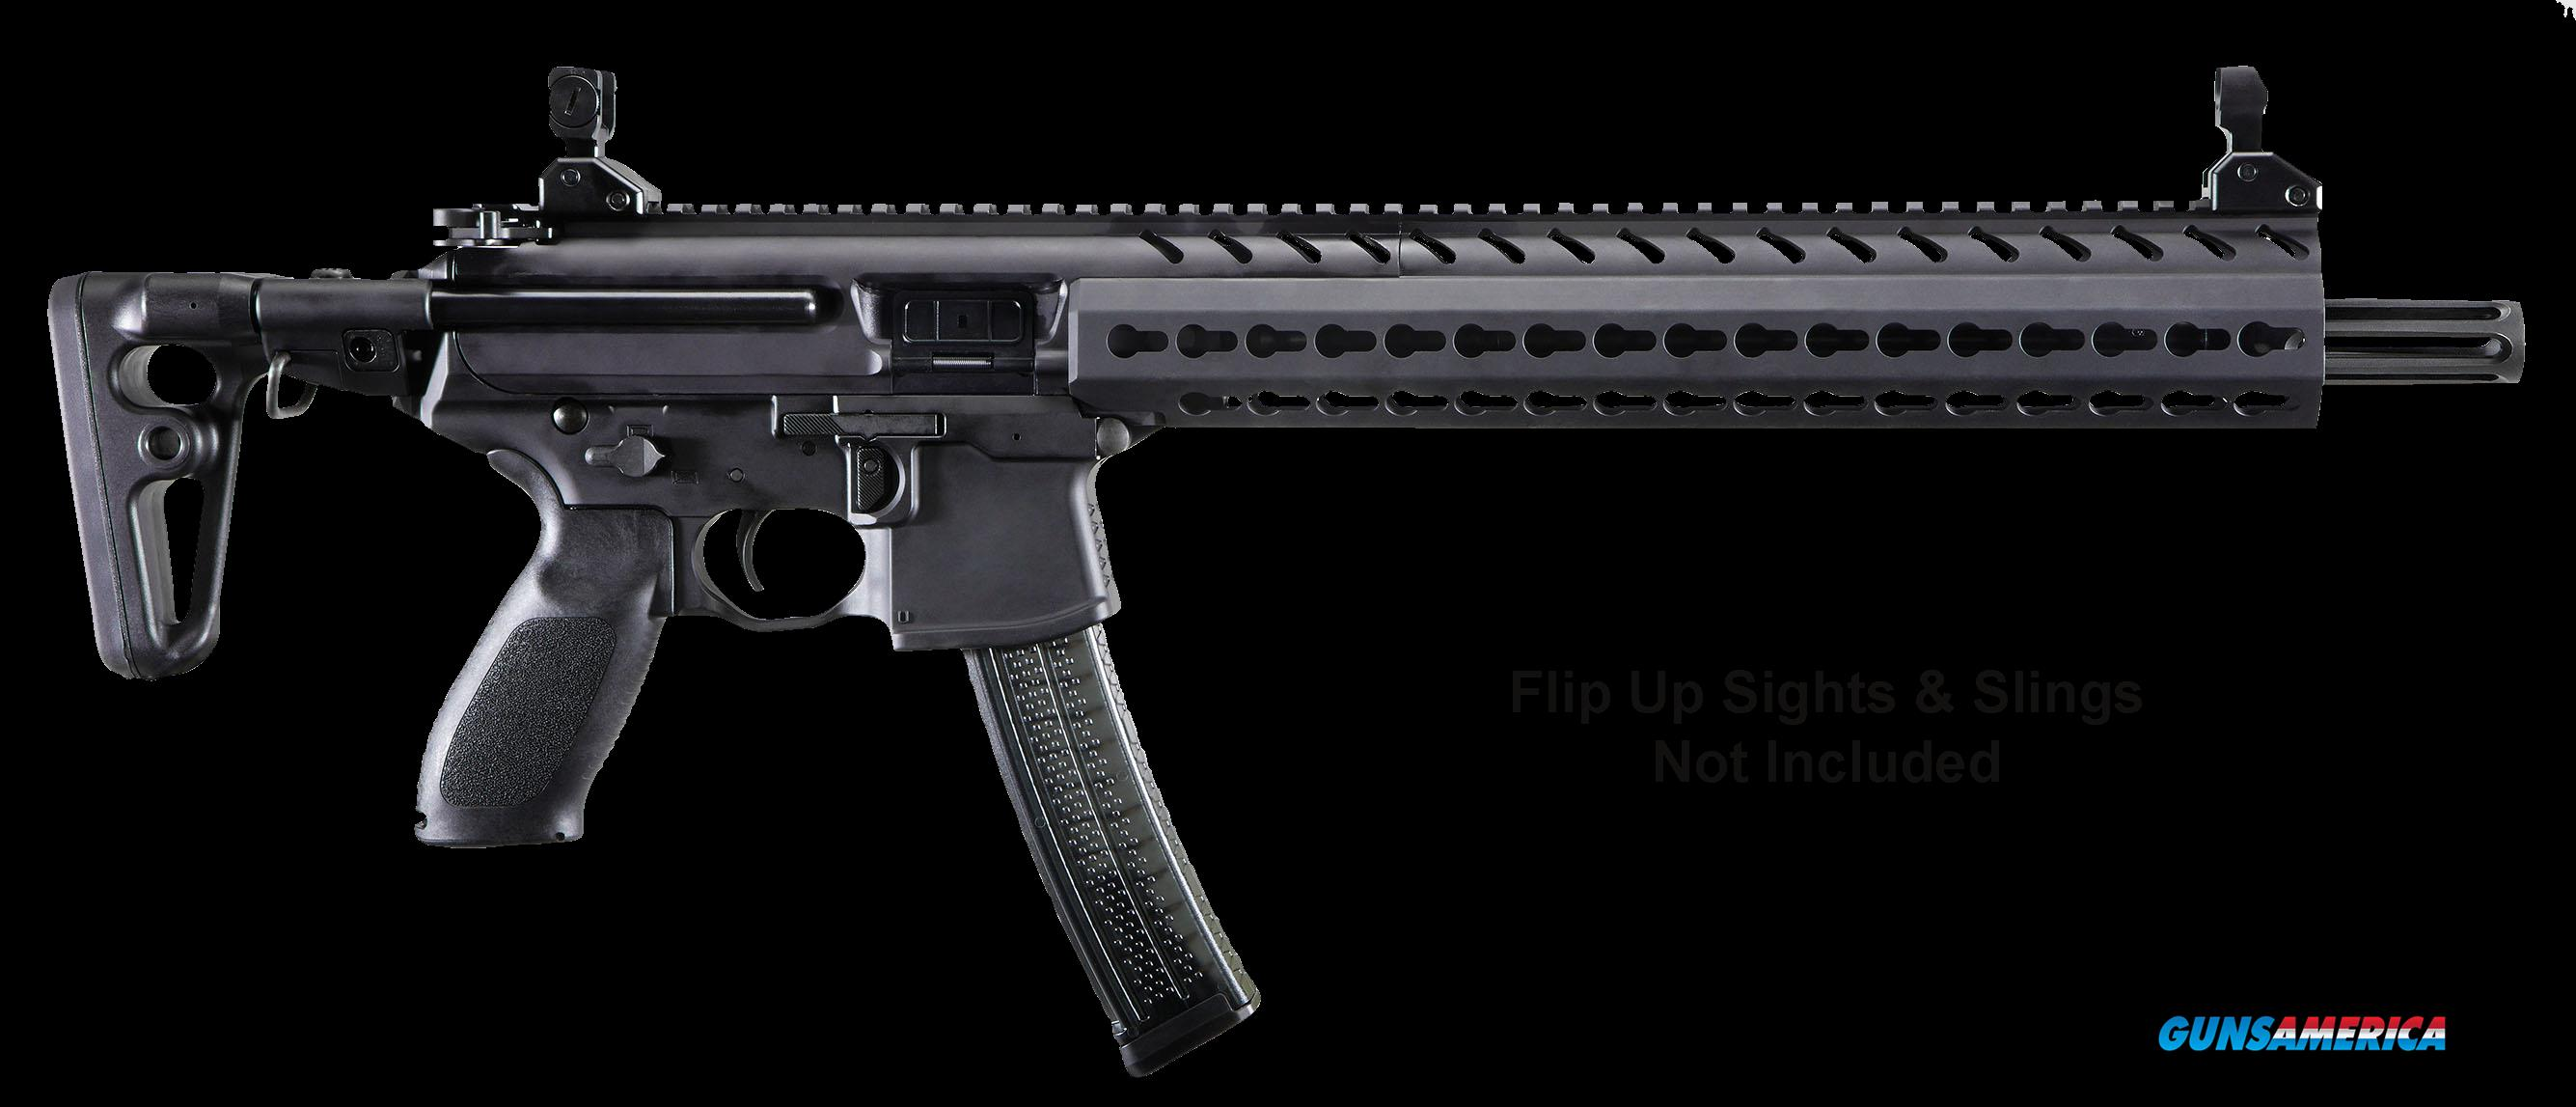 "Sig Sauer MPXC9KMT MPX Carbine Semi-Automatic 9mm Luger 16"" 30+1 Telescoping Black Stk Black Hard  Guns > Rifles > Sig - Sauer/Sigarms Rifles"